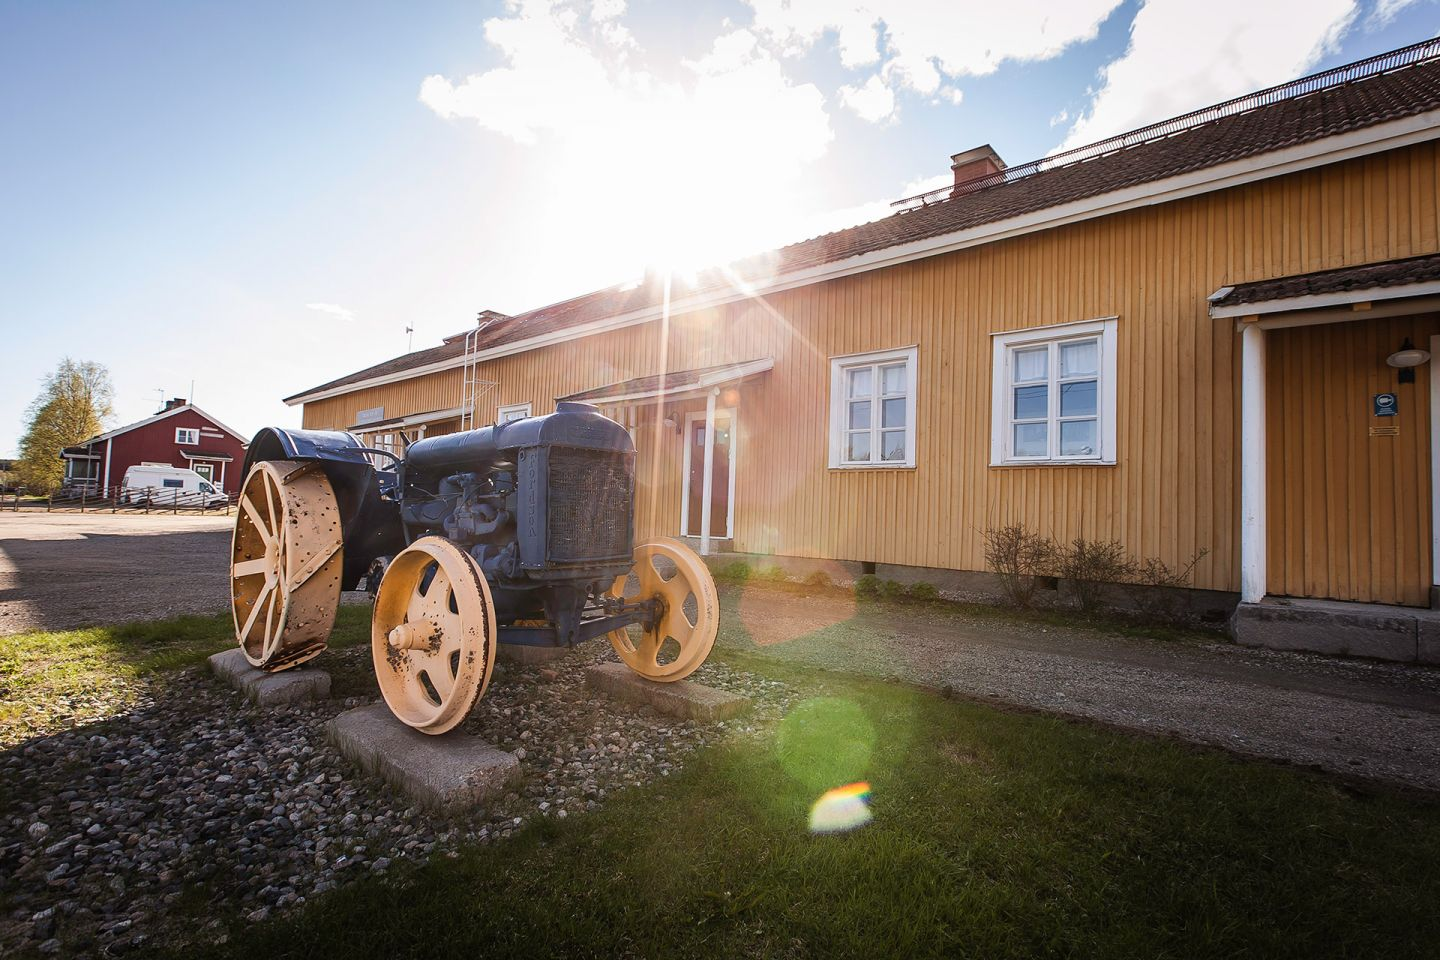 Museum of War and Reconstruction in Salla, Lapland, Finland